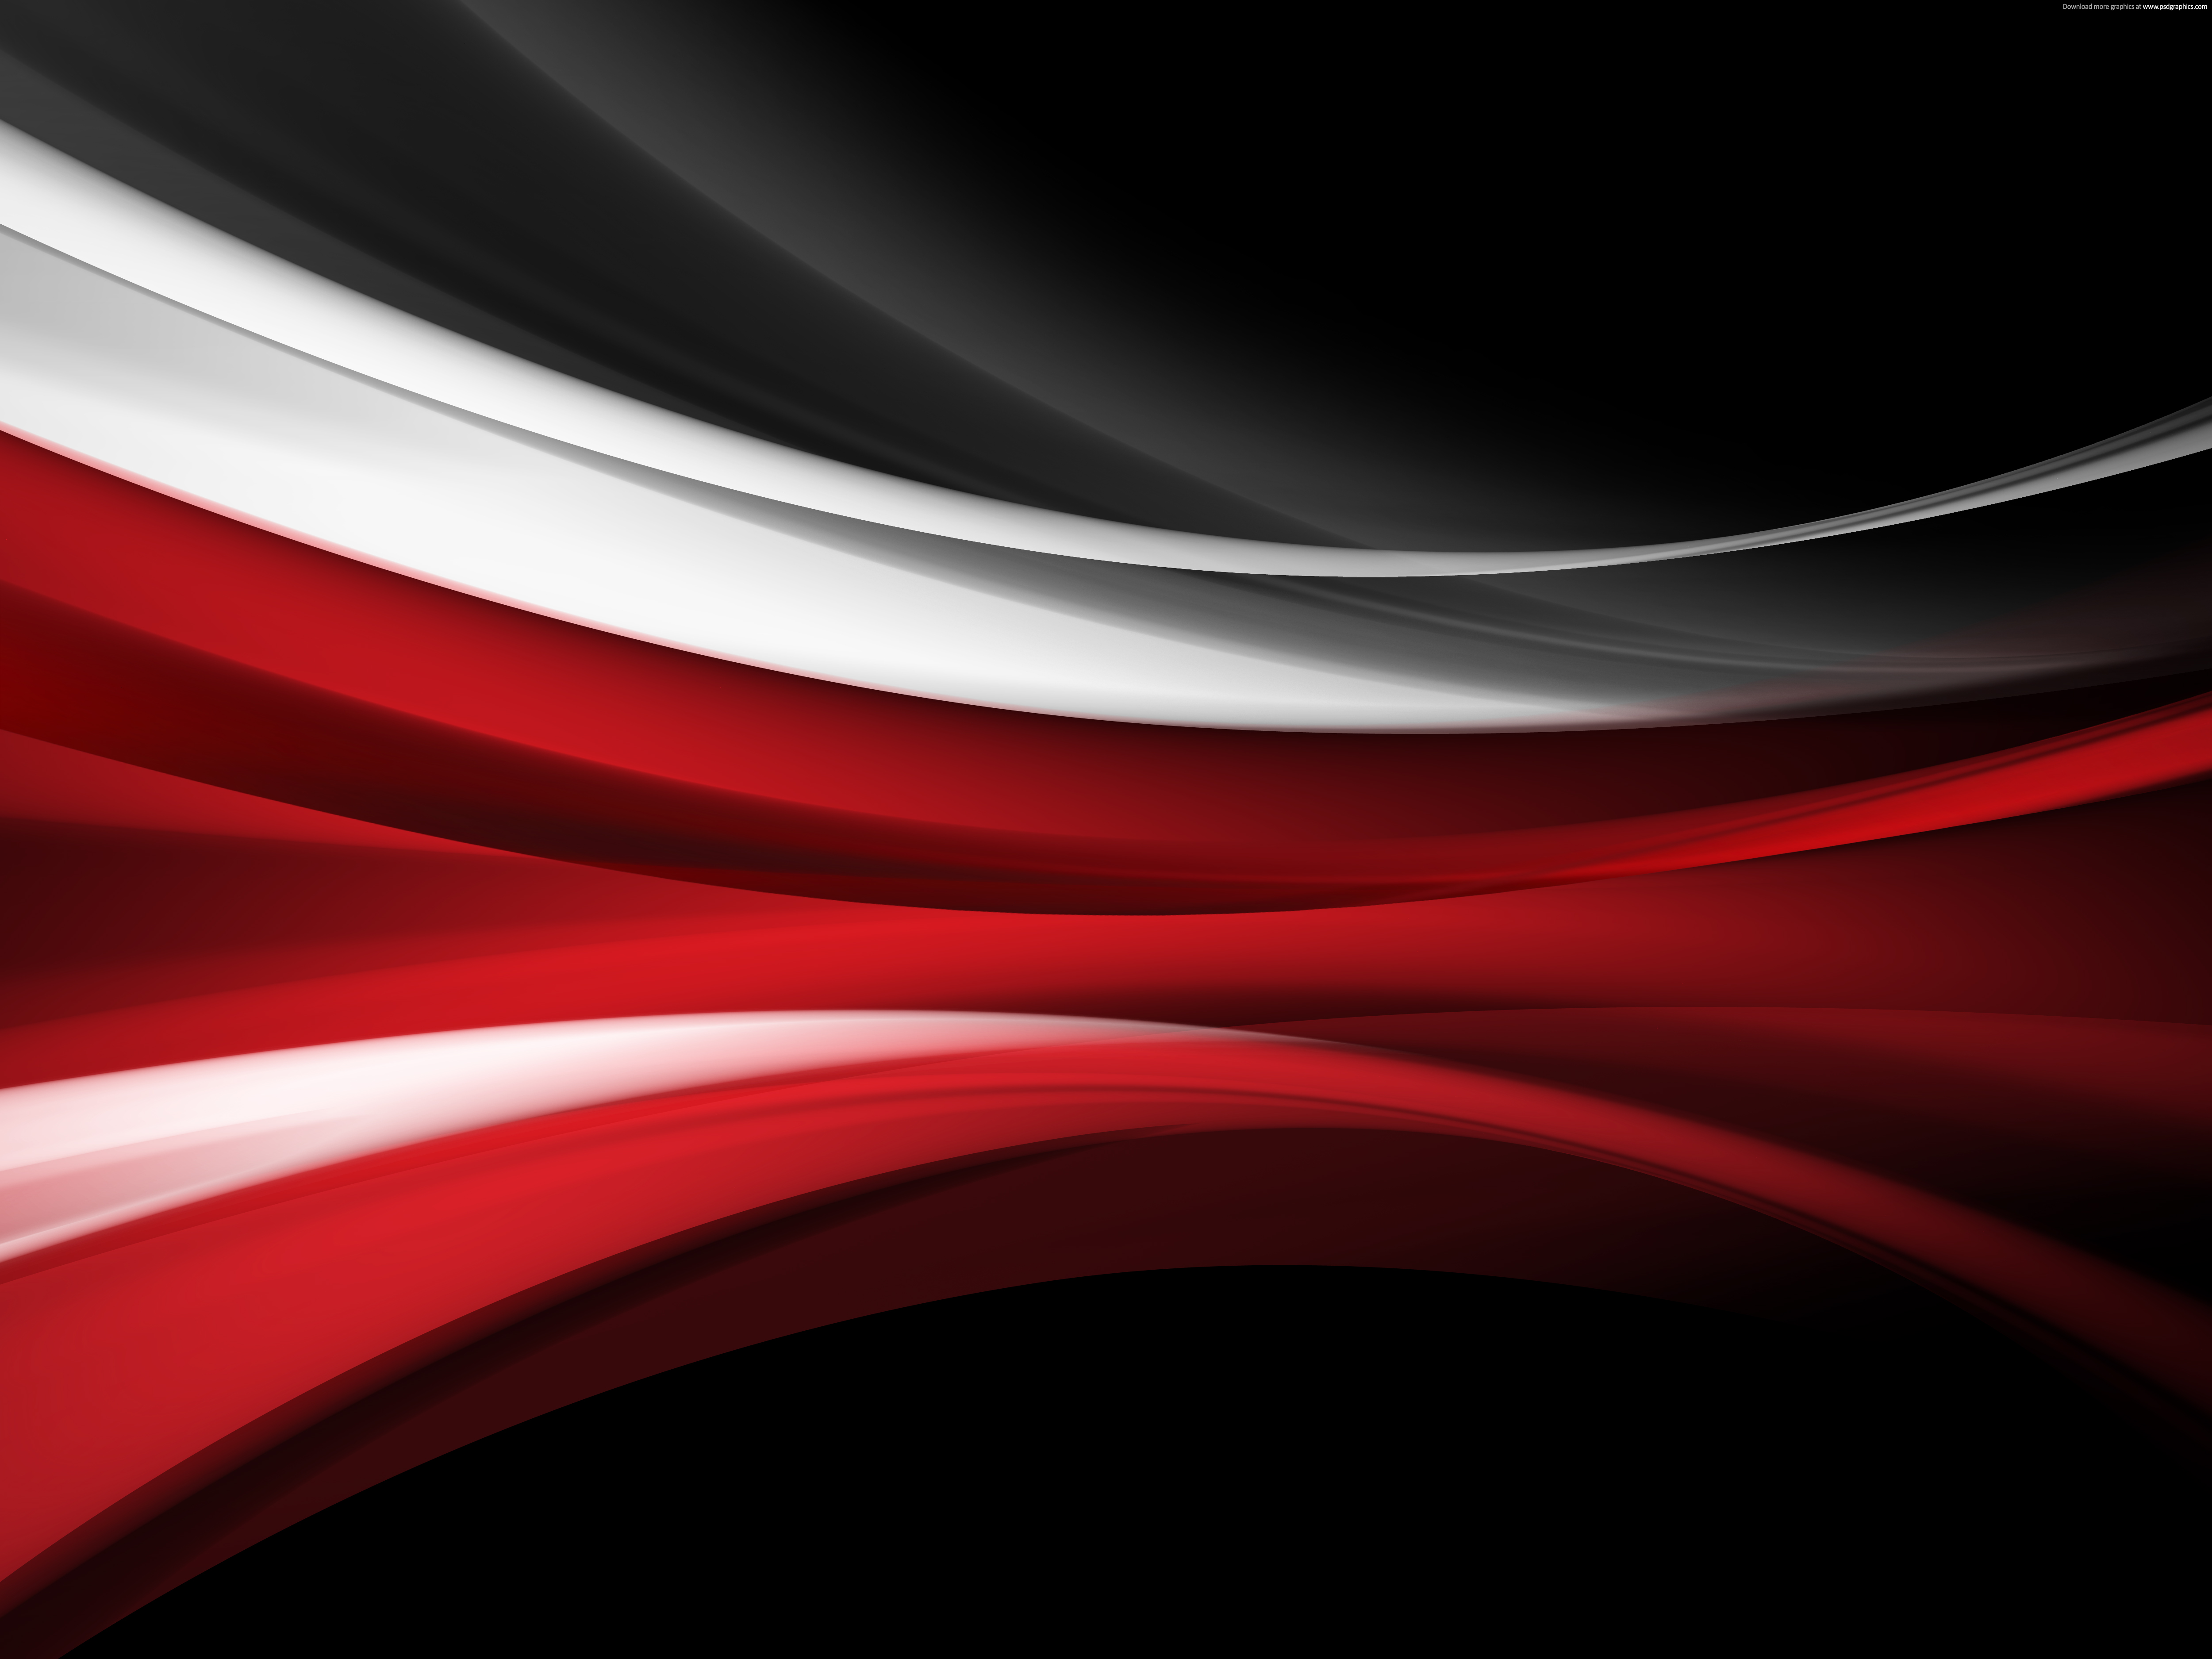 Red light trails background PSDGraphics 5000x3750